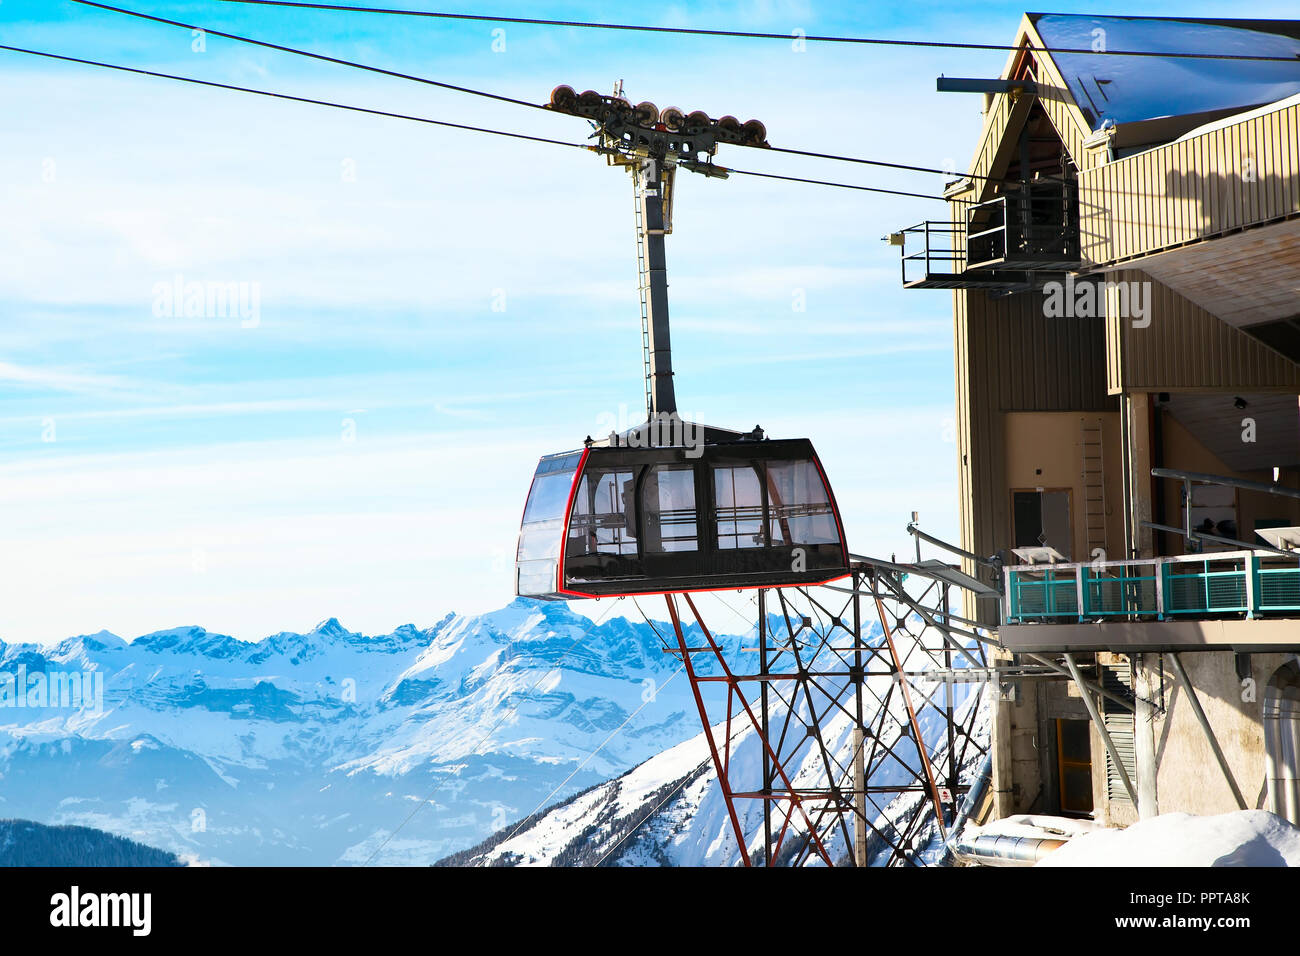 Cable Car from Chamonix to the summit of the Aiguille du Midi and lift station high in the mountains Chamonix, France. - Stock Image